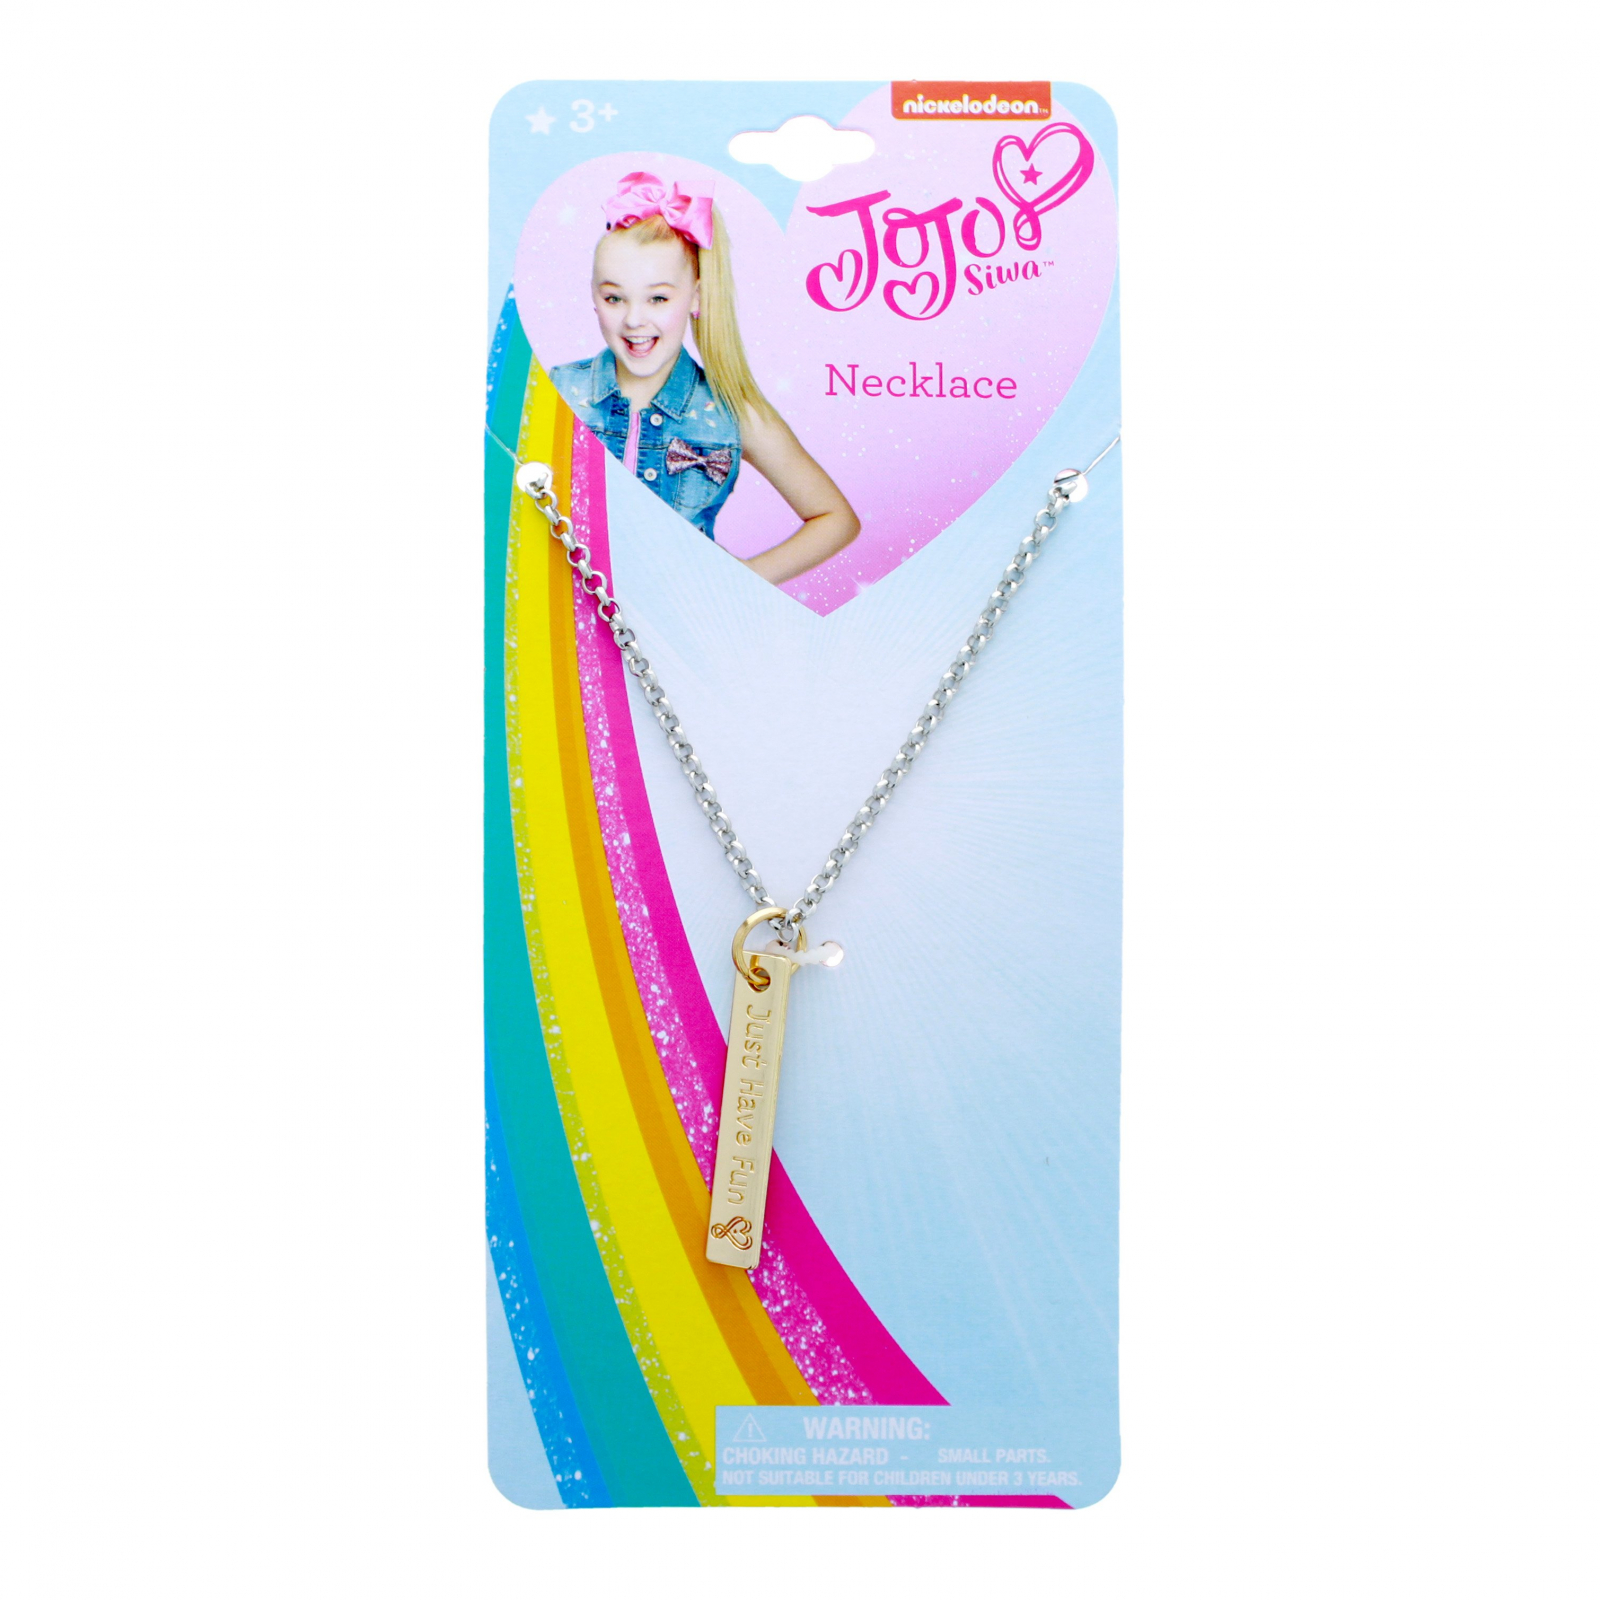 JoJo Siwa Girls Fashion Jewelry Pendant Just Have Fun